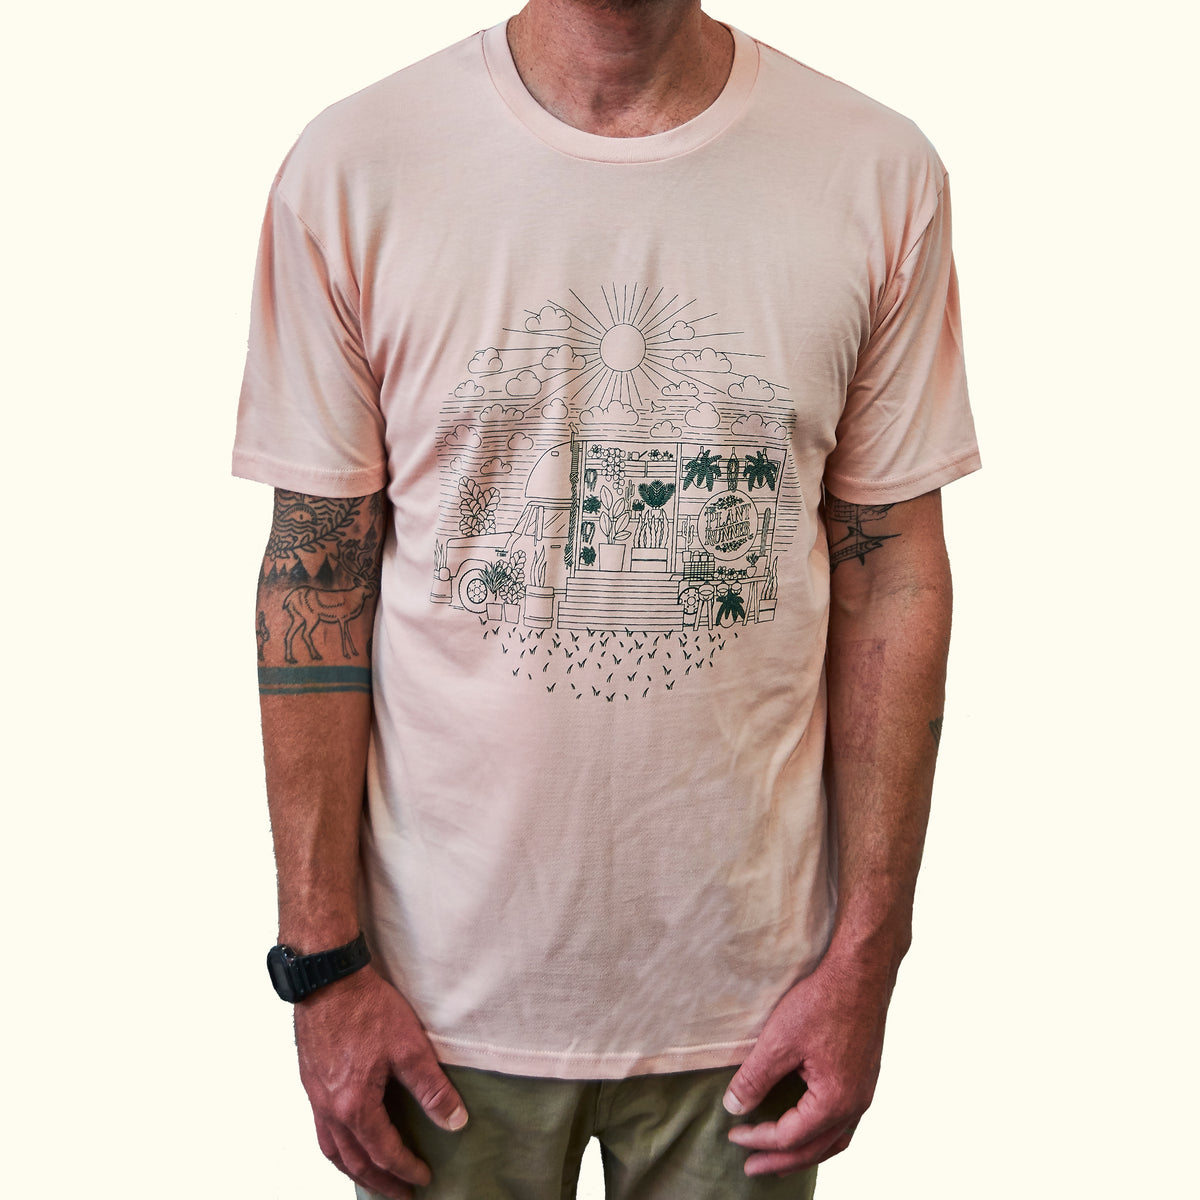 'Fern in the Sun' Plant Runner Mens Tee - Pink